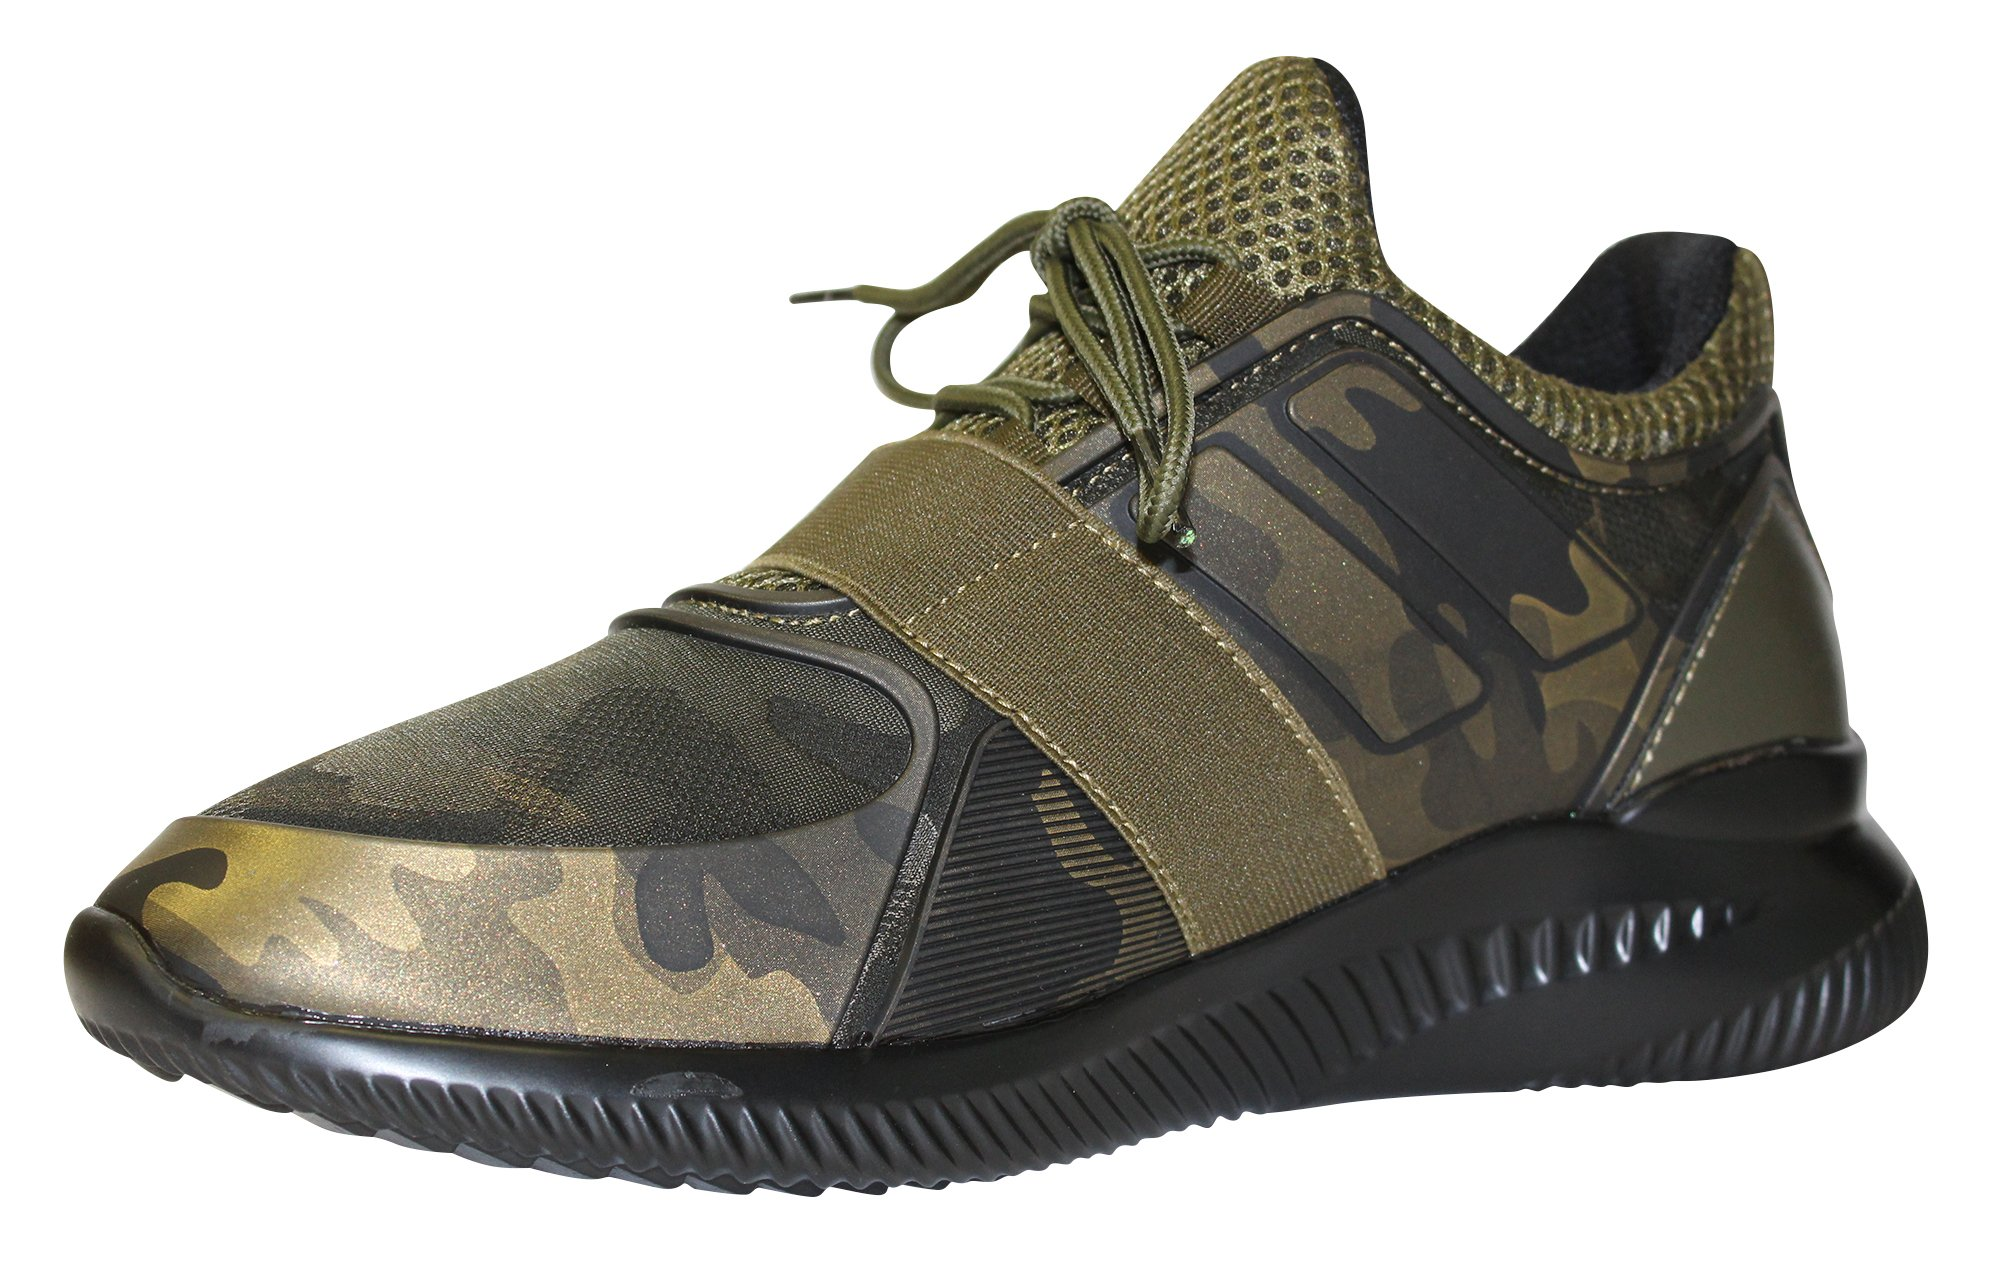 68f75ba9aae3a2 Javi Men s Combo Camouflage Rubber Detail With Elastic Band Sneaker